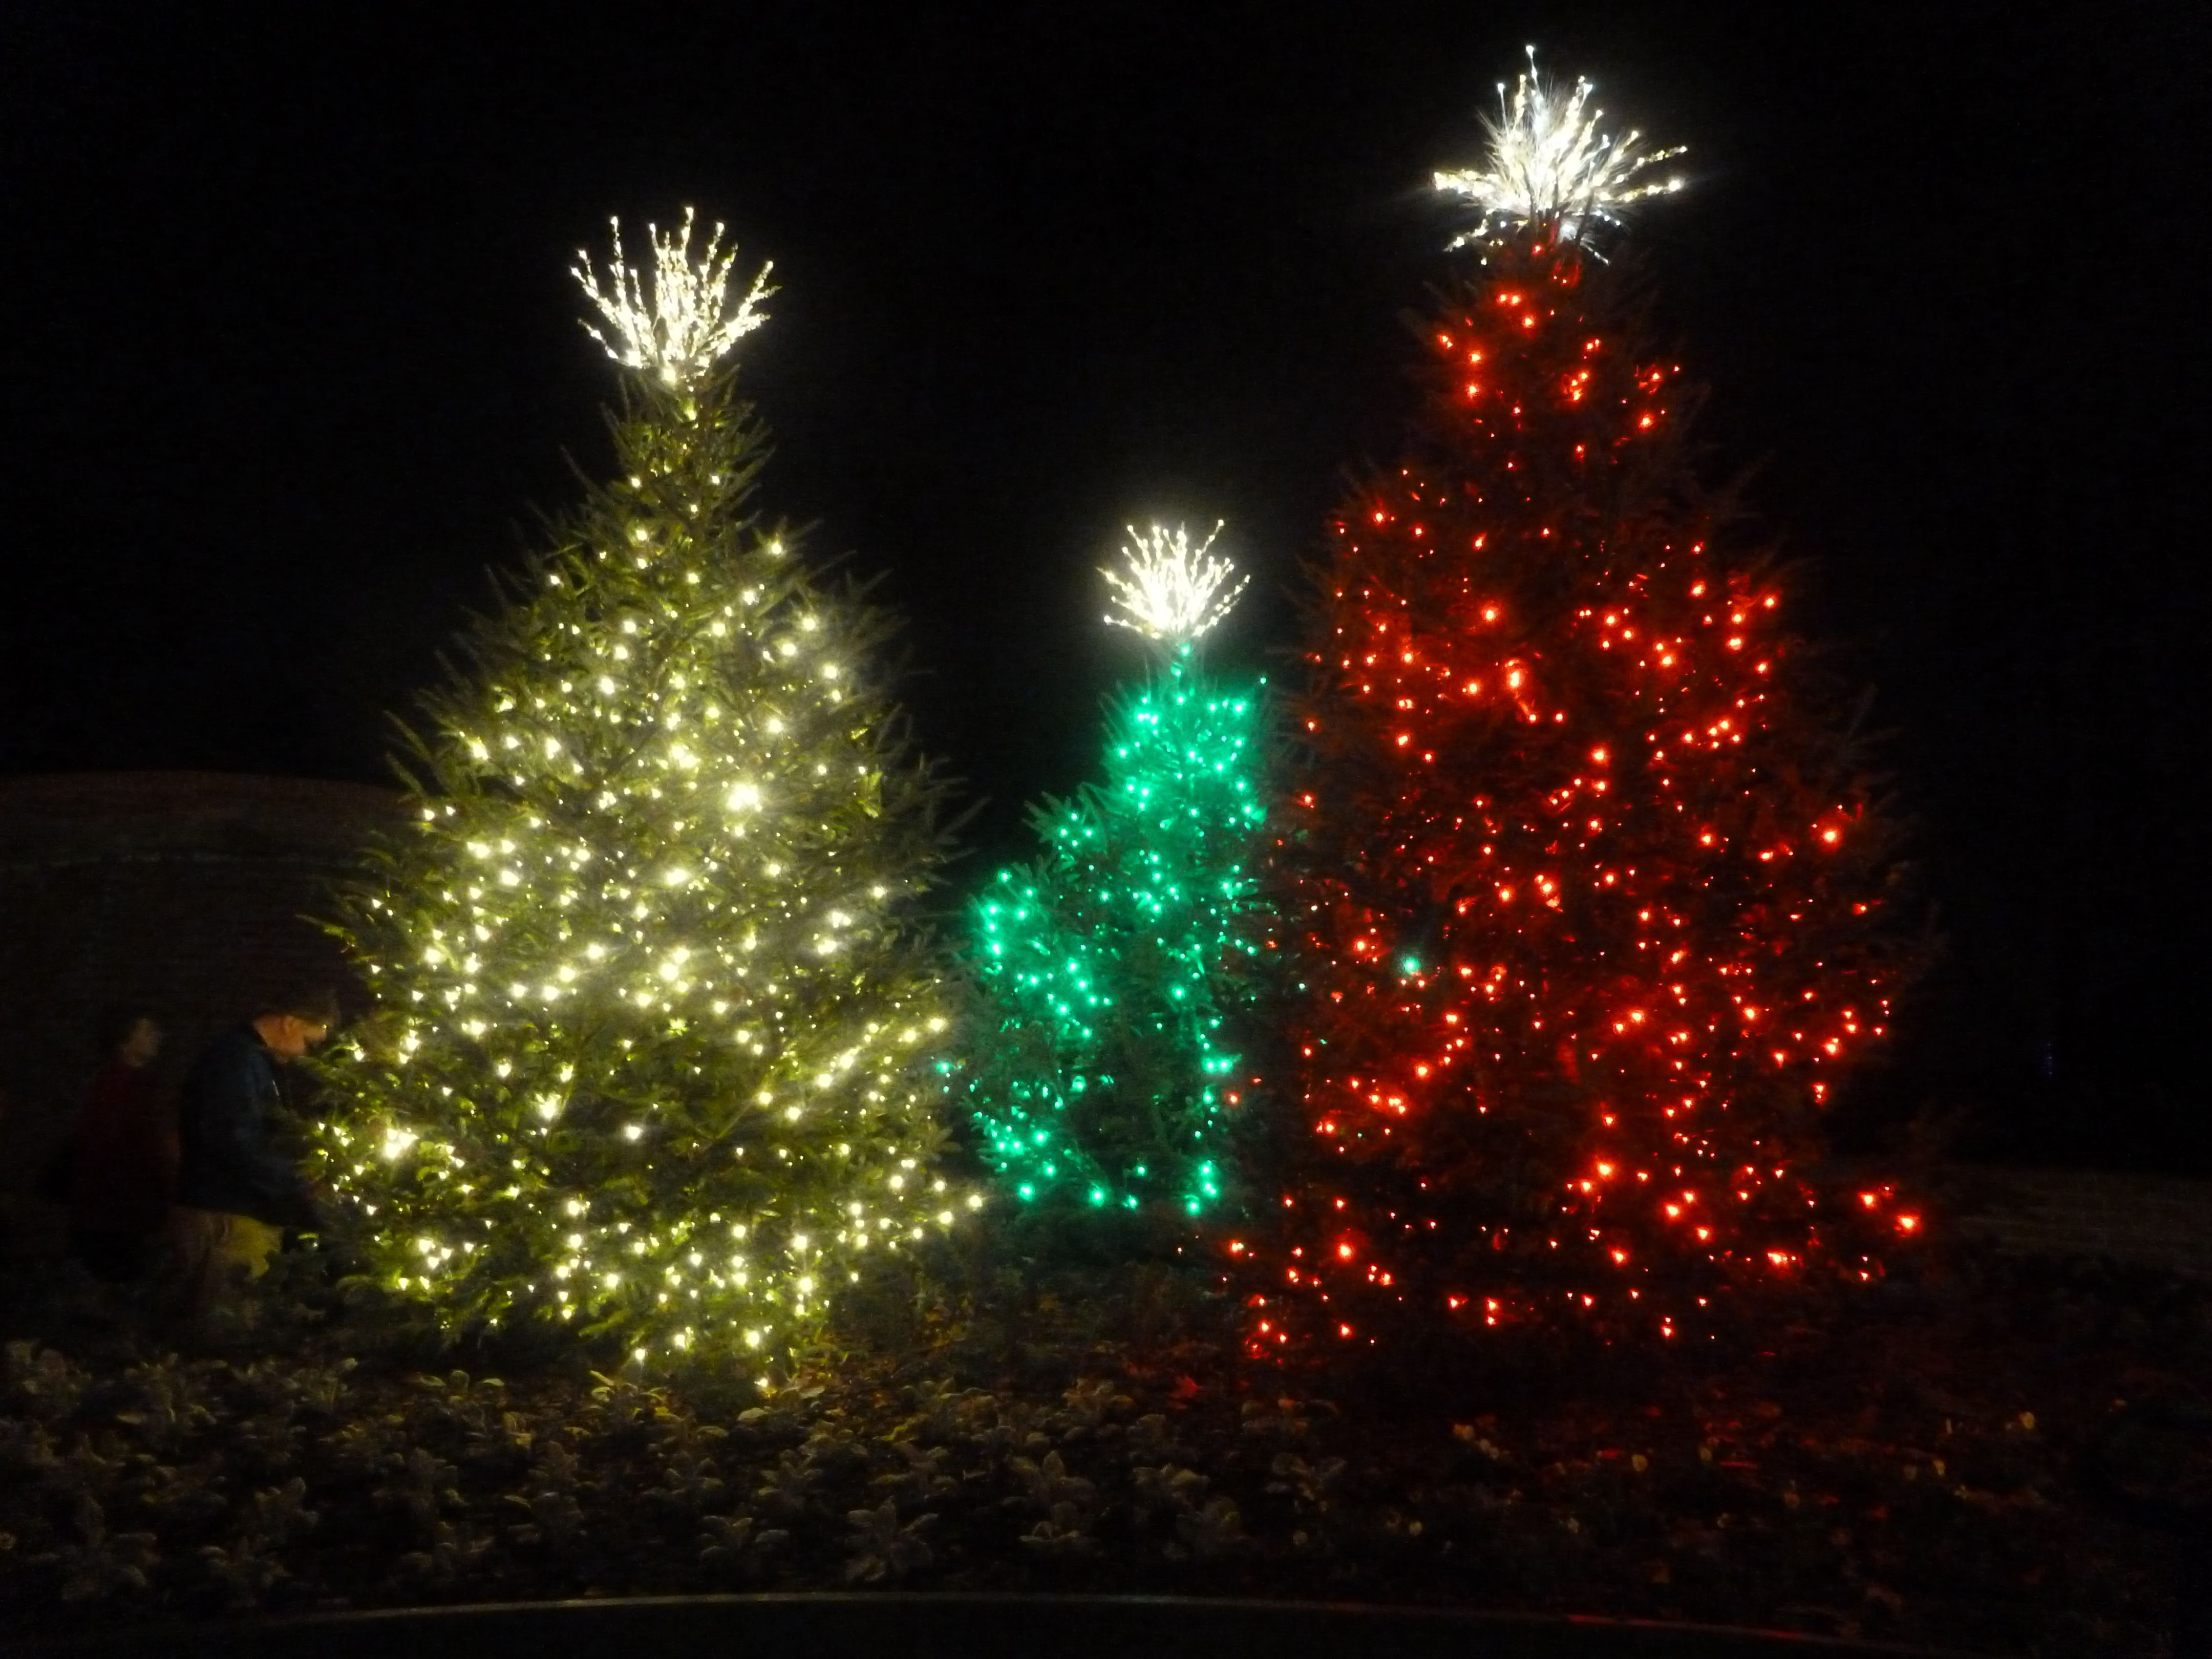 Diy outdoor christmas tree lights festive garden lighting collections outdoor christmas mozeypictures Image collections